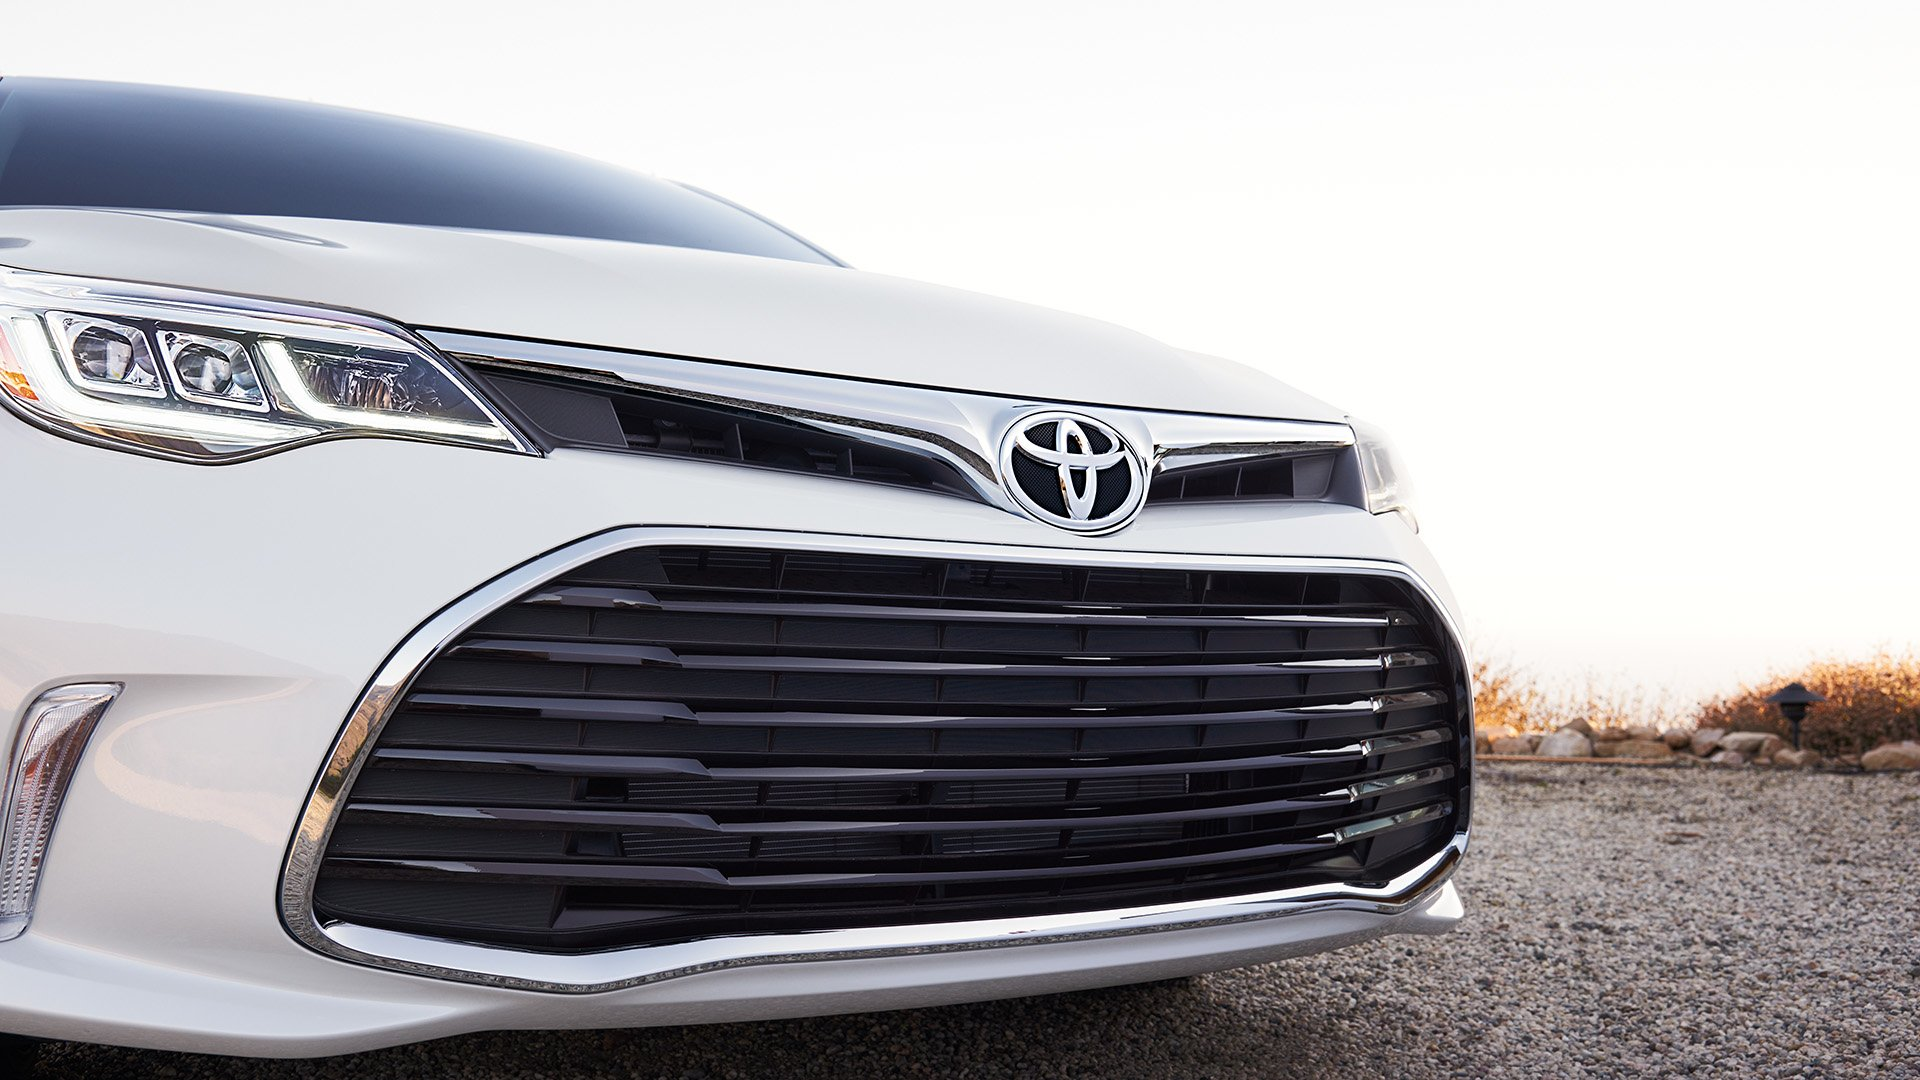 Green Toyota New Dealership In Springfield Il 62711 99 Camry Fuel Filter Location Oil Change Service Deals